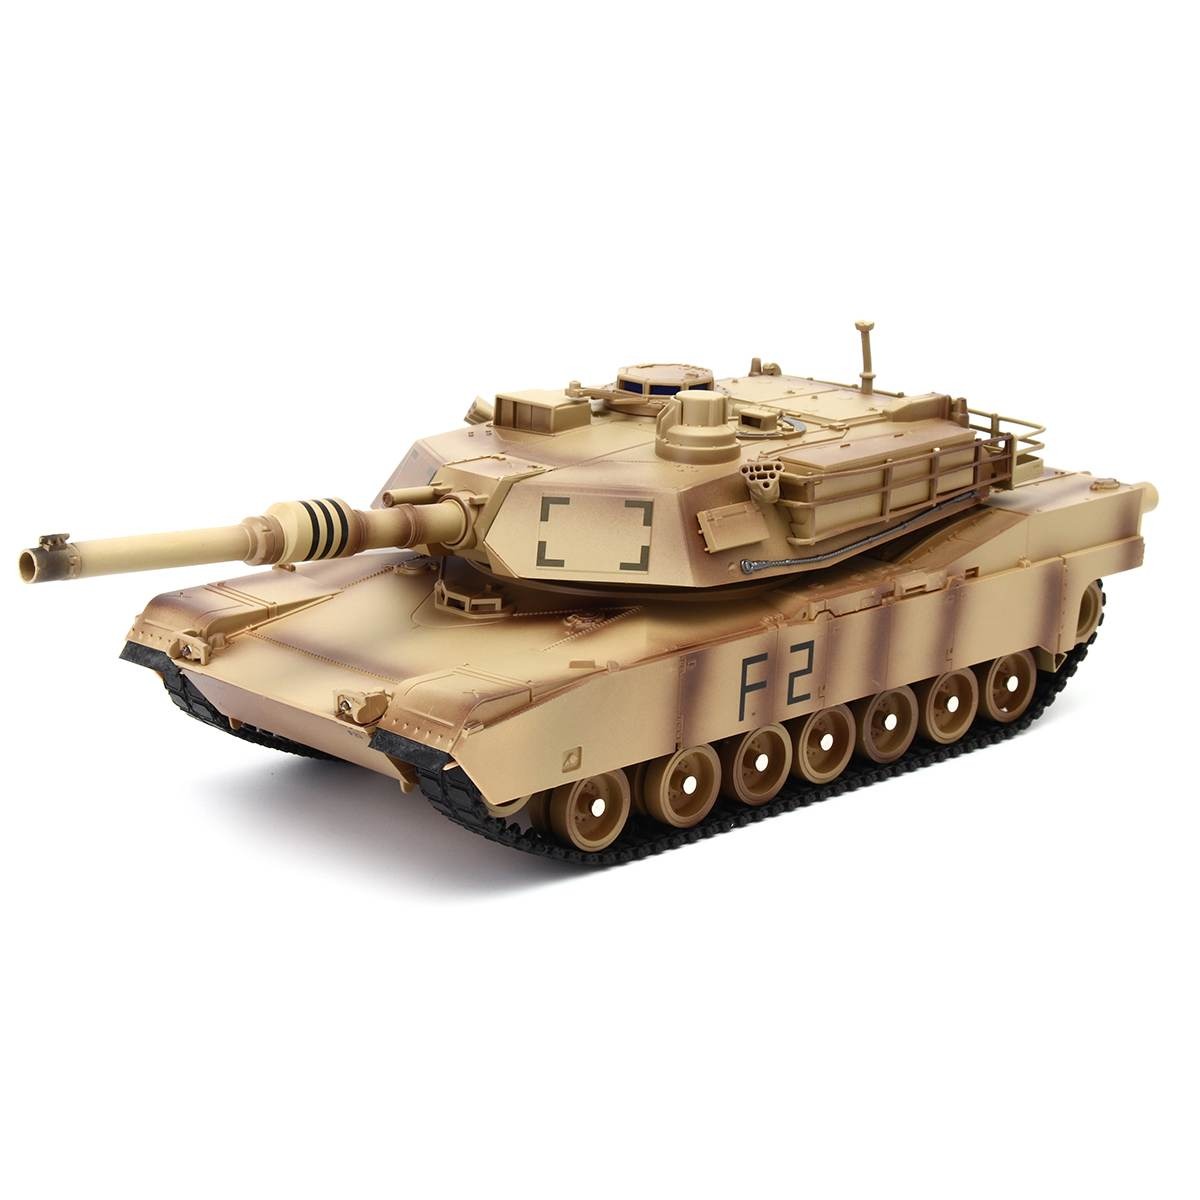 1:24 Radio Remote Control RC Tank With Firing Sound Military Vehicle Model